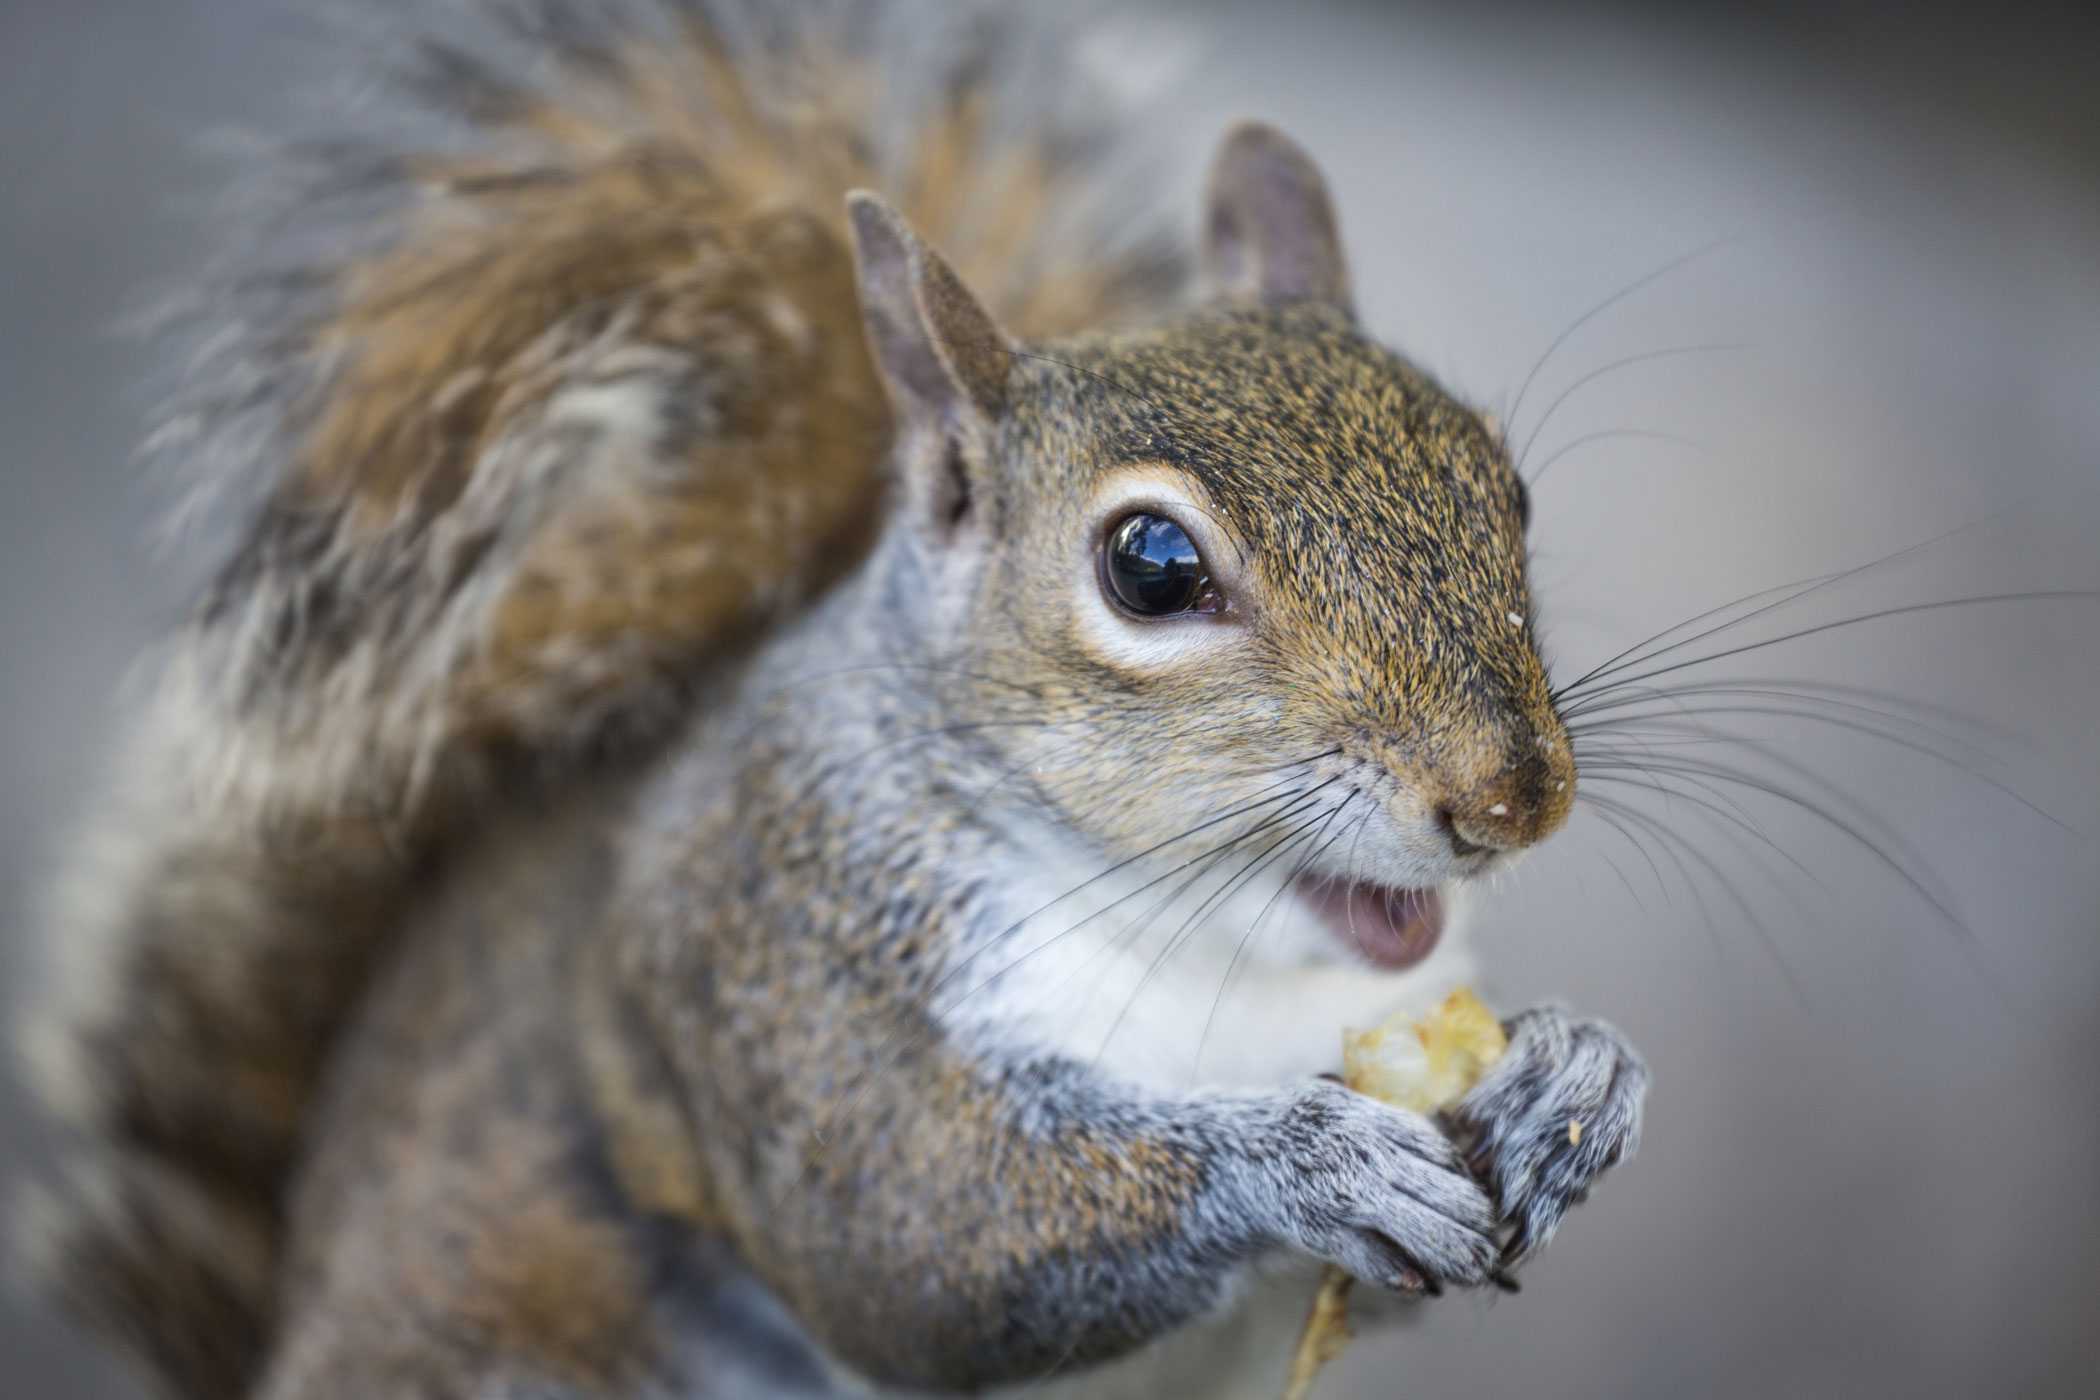 The deceptively adorable gray squirrel could be the most loathed animal in Britain. Grays, which are native to North America, carry deadly squirrel pox, to which they are immune but native red squirrels are vulnerable. They also eat seven times more food per hectare than their scarlet cousins.